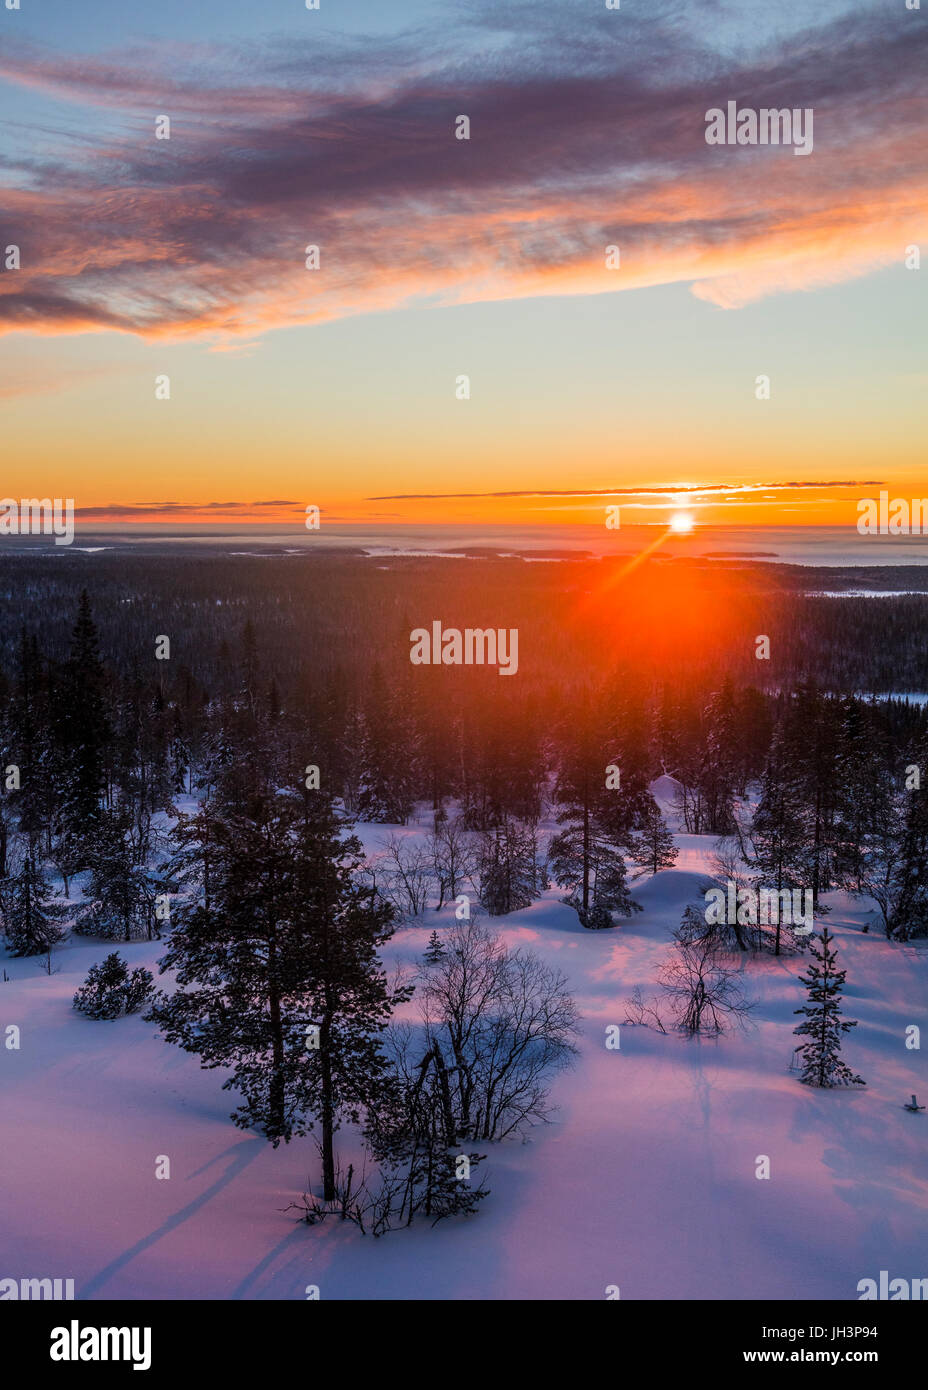 Winter Sonnenaufgang in Finnland Stockbild